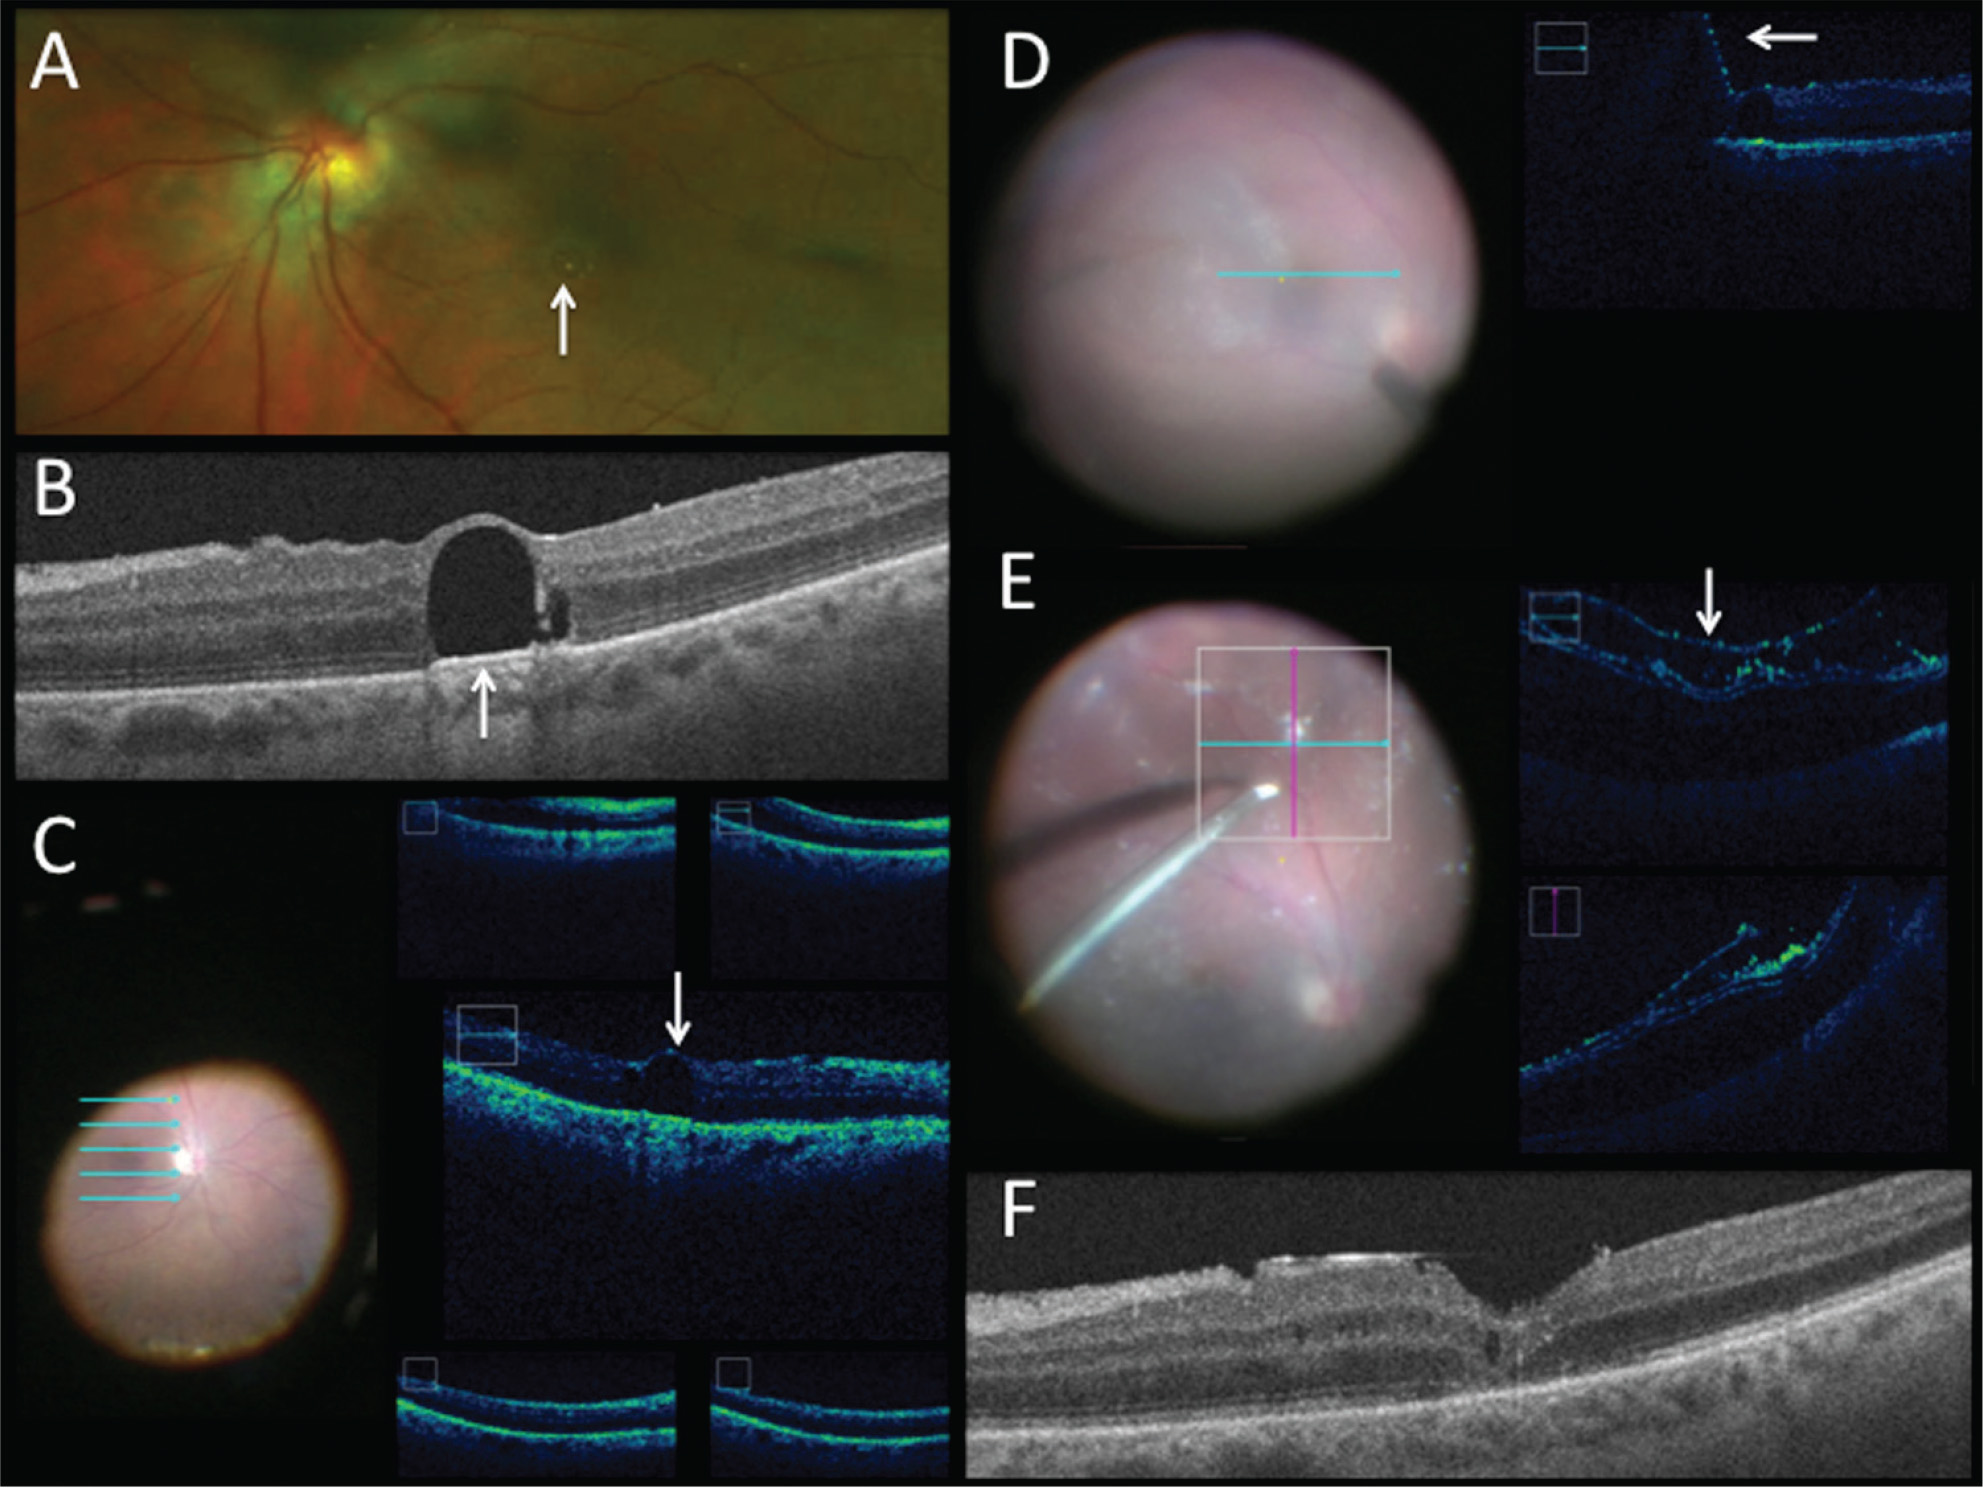 Intraoperative optical coherence tomography (iOCT) for subretinal perfluoro-n-octane (PFO) removal. (A) Macular photograph demonstrating chronic retained subfoveal PFO. (B) Preoperative OCT visualization of subretinal PFO. (C) En face view (left) with corresponding iOCT five-line raster (right) scan over macula depicting subretinal fluid present at beginning of case. (D) Intraoperative en face view of subretinal bleb induction with 41-gauge cannula (left) and iOCT one-line raster scan (right) demonstrating subretinal bleb approaching subretinal PFO. (E) Intraoperative en face view of inferior proliferative viteroretinopathy (PVR; left) with iOCT horizontal and vertical scan (right) demonstrating detached retina, PVR, and triescence staining. (F) OCT at 3 months postoperatively shows absence of PFO, inner segment/outer segment junction abnormalities, and trace cystoid edema.